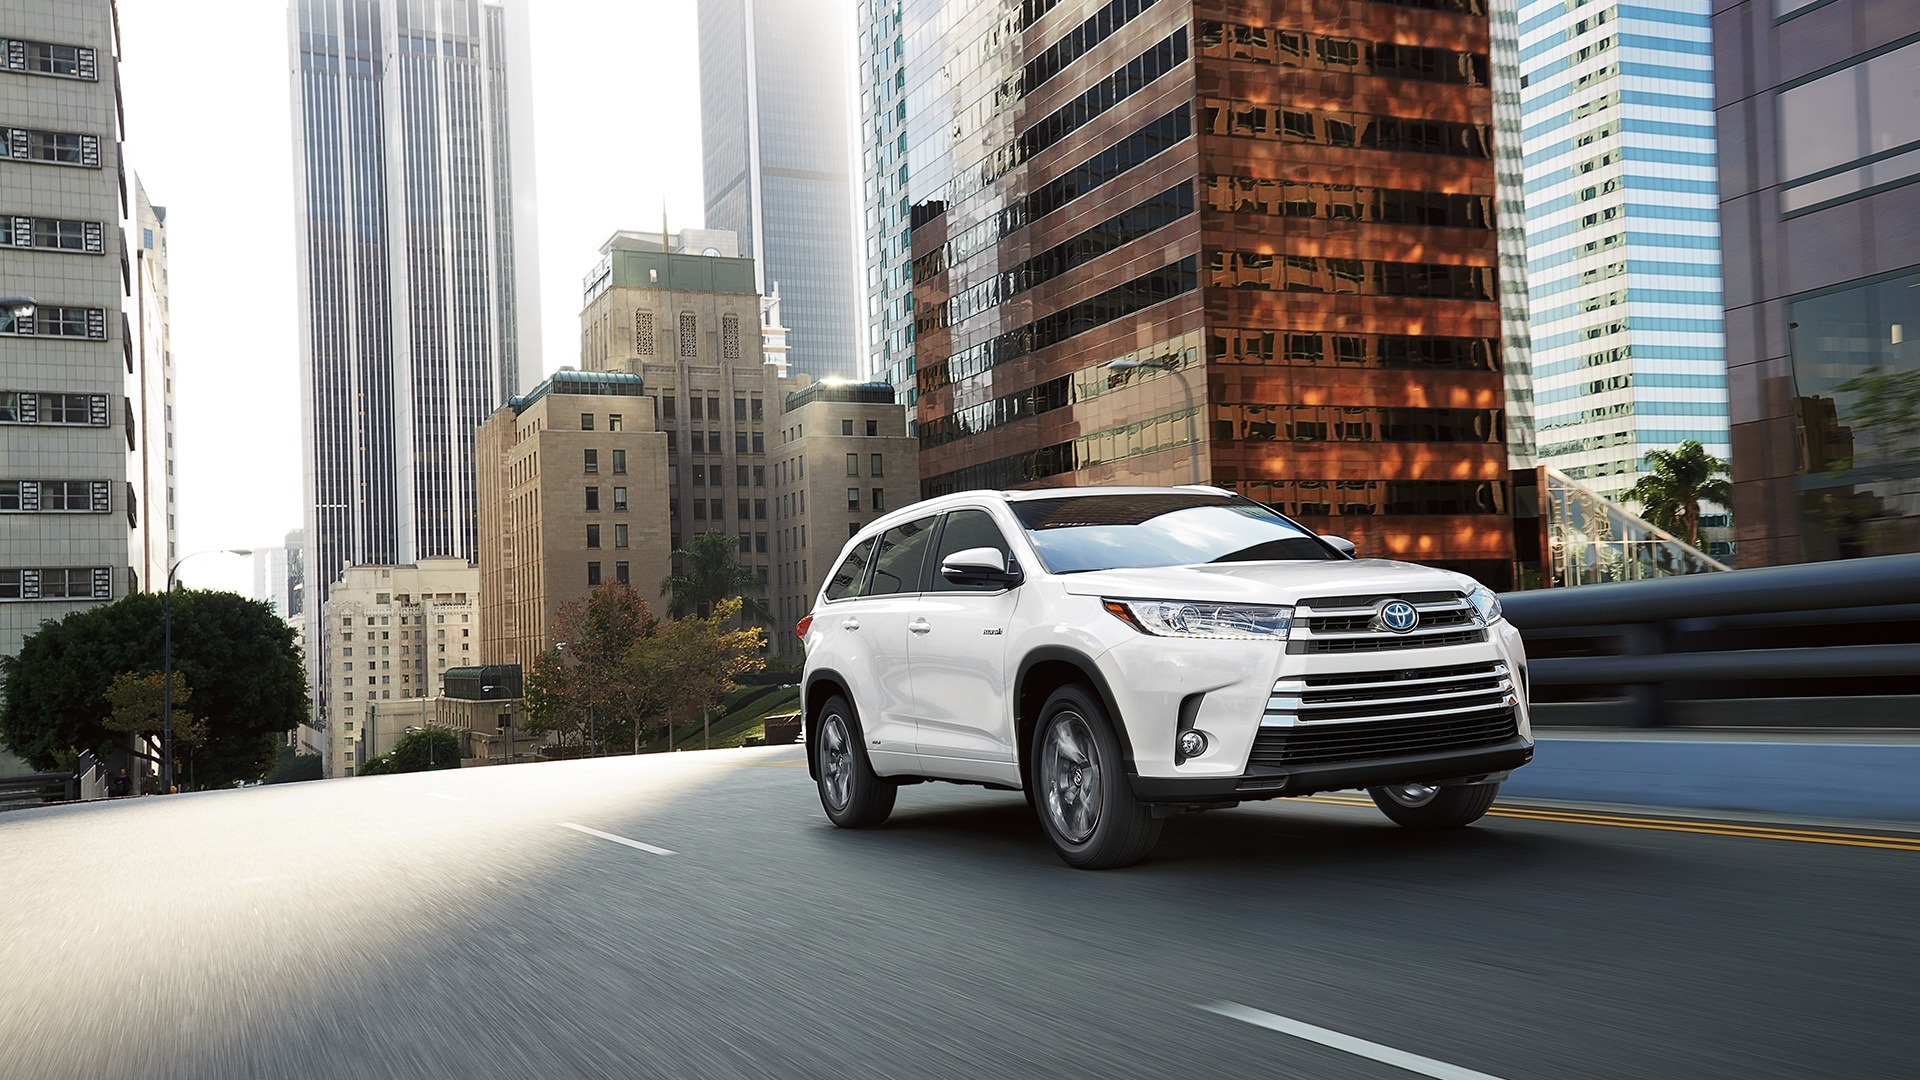 2017 Toyota Highlander Merriam